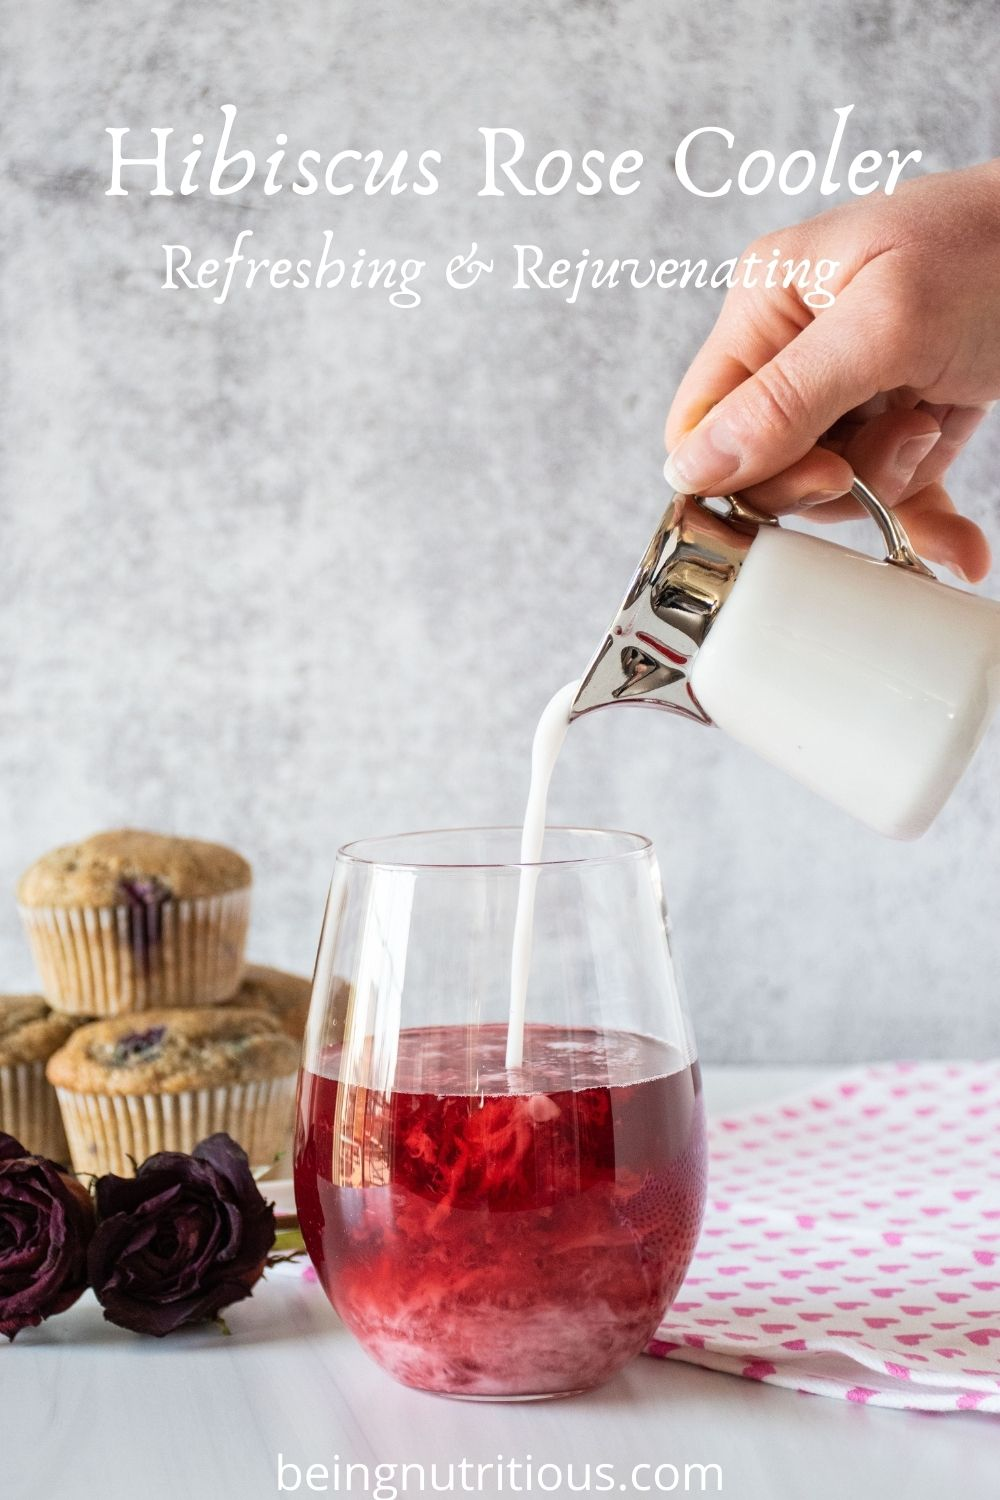 Glass of red tea with coconut milk being poured in. Text overlay: Hibiscus Rose Cooler; Refreshing & Rejuvenating.